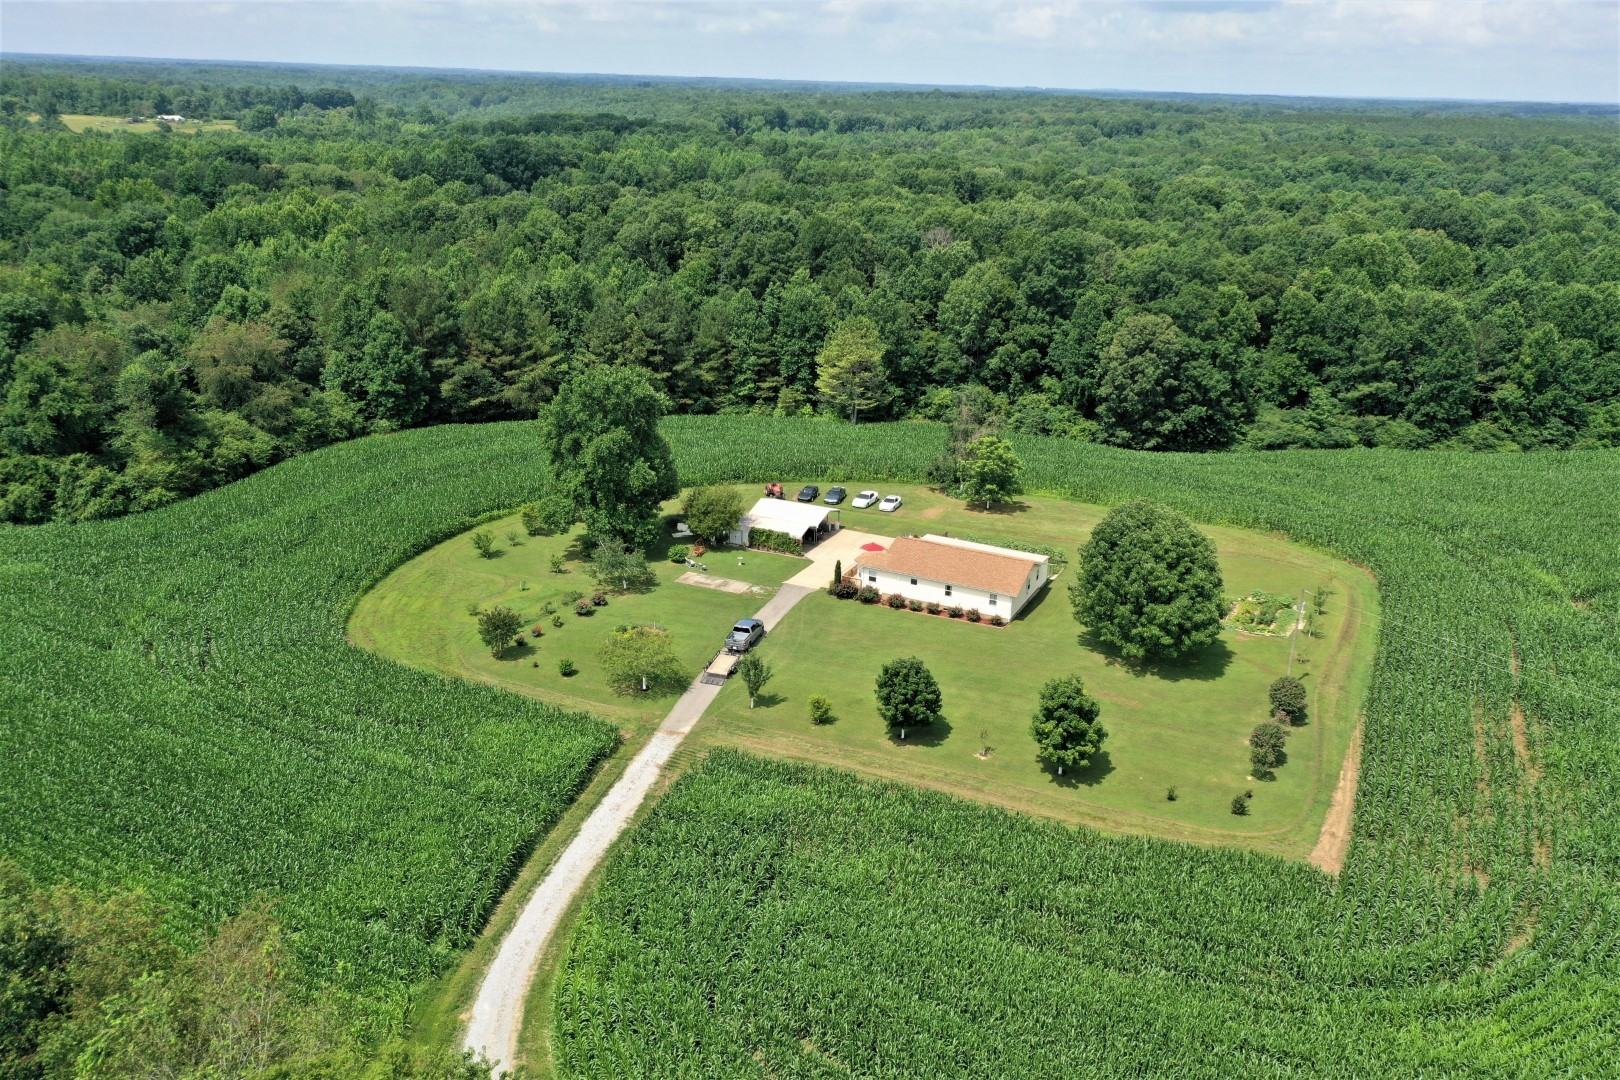 112 112 St. Mary Rd. Property Photo - Loretto, TN real estate listing